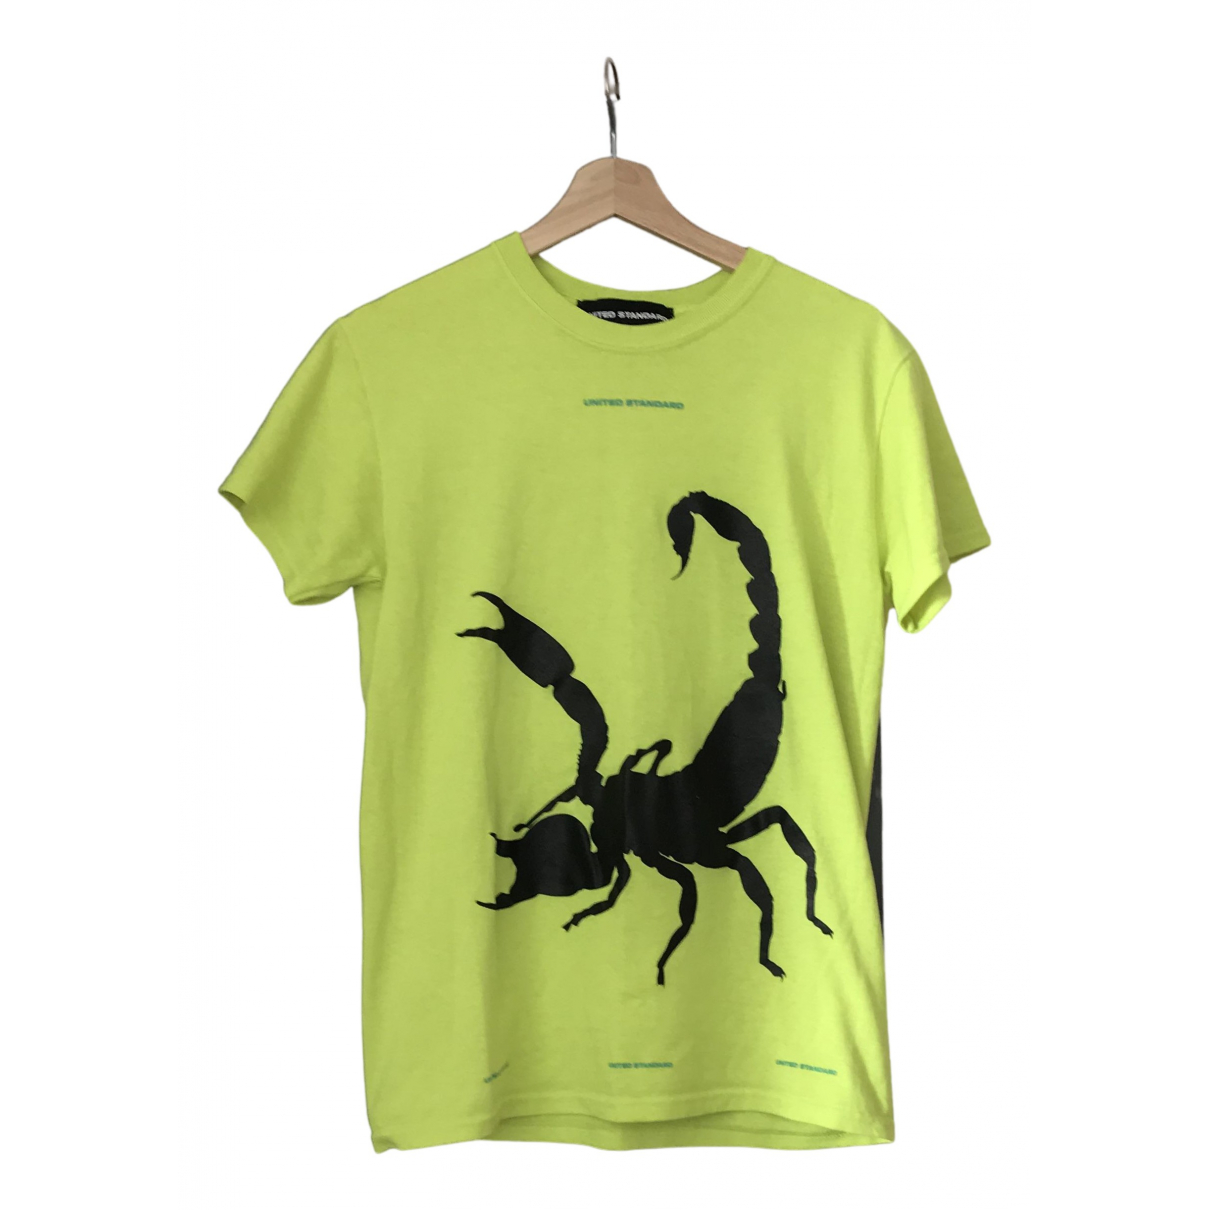 United Standard N Yellow Cotton T-shirts for Men S International